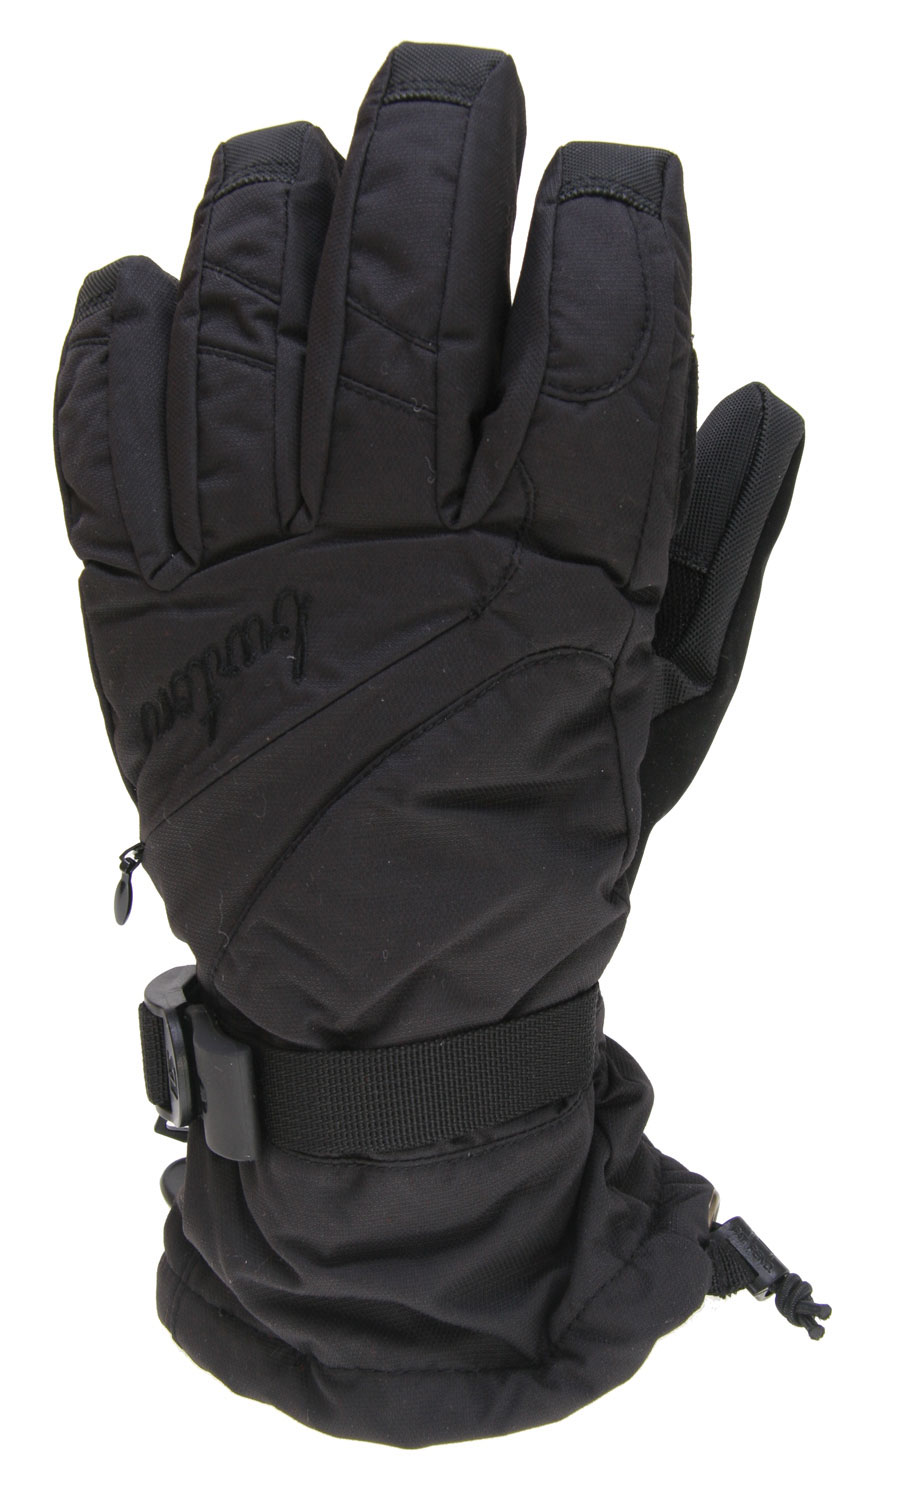 Snowboard The Burton Gore Snowboard Gloves are made with dryride ultrashell dual layered fabric. Featuring a removable stretchy glove, get extra comfort and warmth or simply wear it alone. Great thermacore insulation and microfleece lining provide that added warmth. So comfortable, rock these all day long. Super ideal for snowboarding, make sure to have these on at all times.Key Features of The Burton Gore Women's Gloves: DRYRIDE Ultrashell 2 Layer Coated Fabric GORE TEX Waterproof/Breathable Glove Insert Brushed Microfiber Lining Thermacore Insulation Removable, 4 Way Stretch DRYRIDE Thermex Liner with Stick Icky Grip Palm Soft Chamois Goggle Wipe Hidden Heater/Vent Pocket Pistol Grip Pre Curved Fit - $27.27